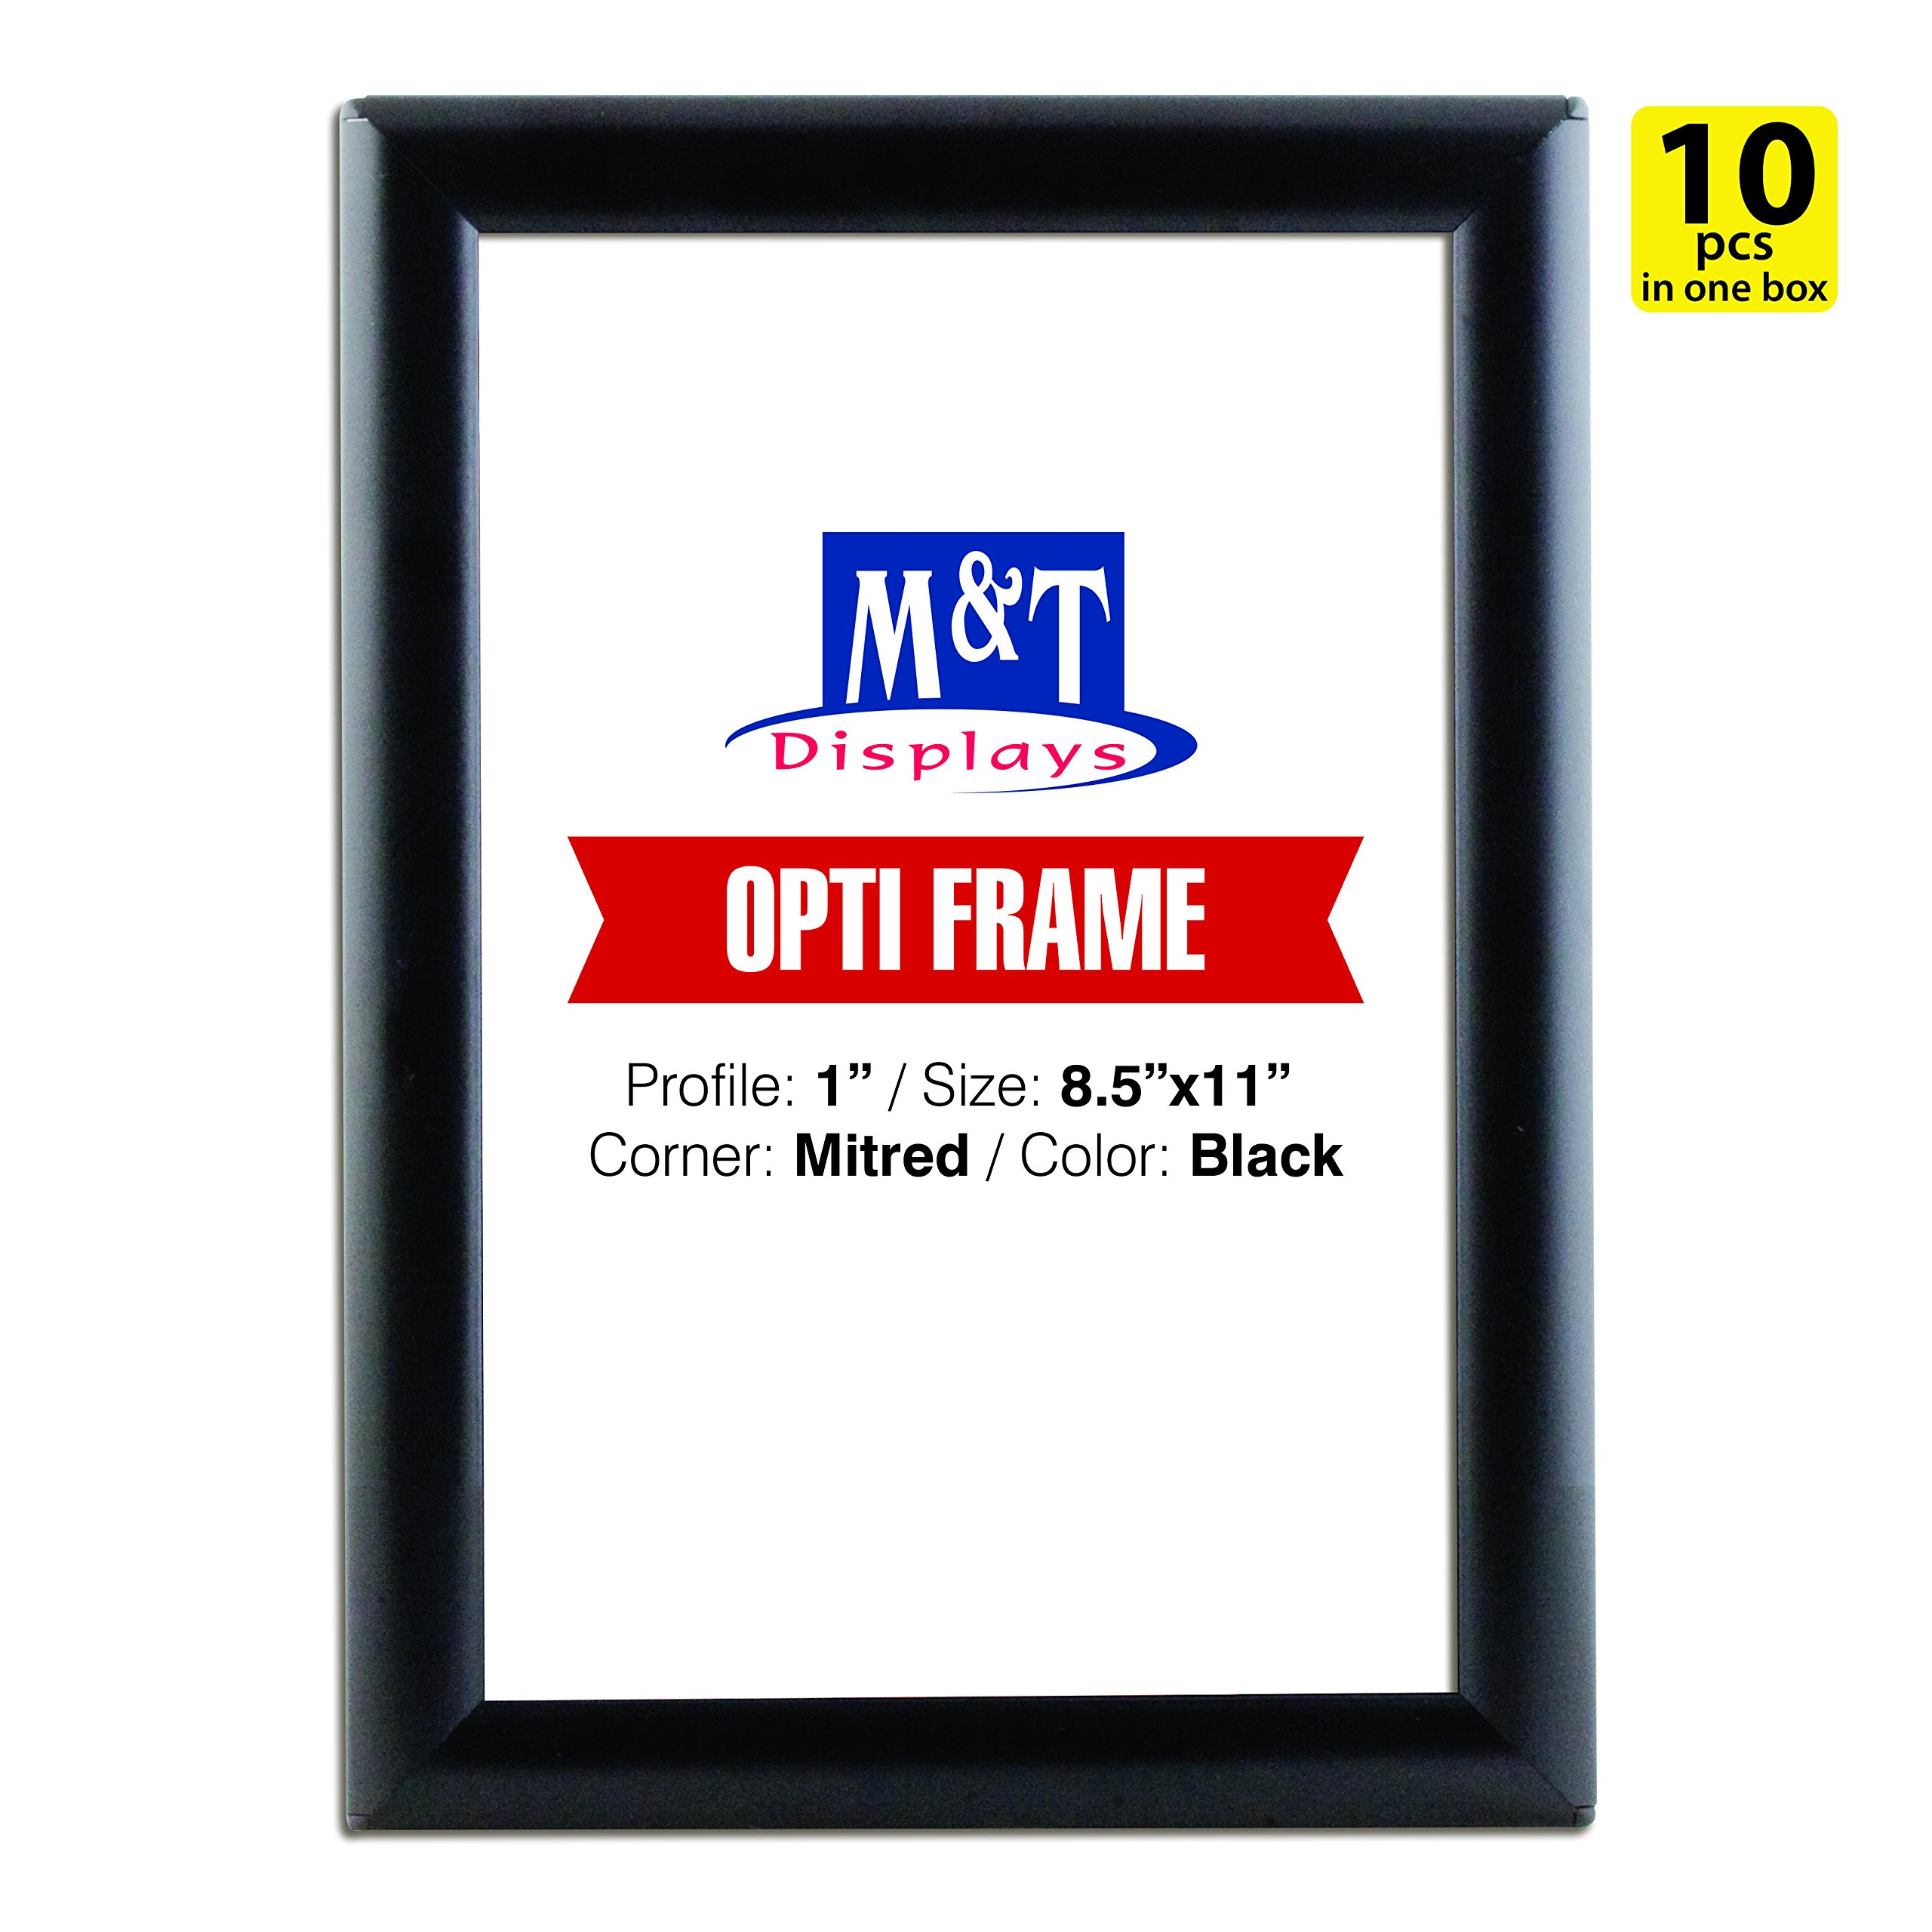 M&T Displays 8.5x11 Snap Frame for Wall Mount, Snap Open Frame, 1 inch Profile - Black / 10pcs / $8.25 Each